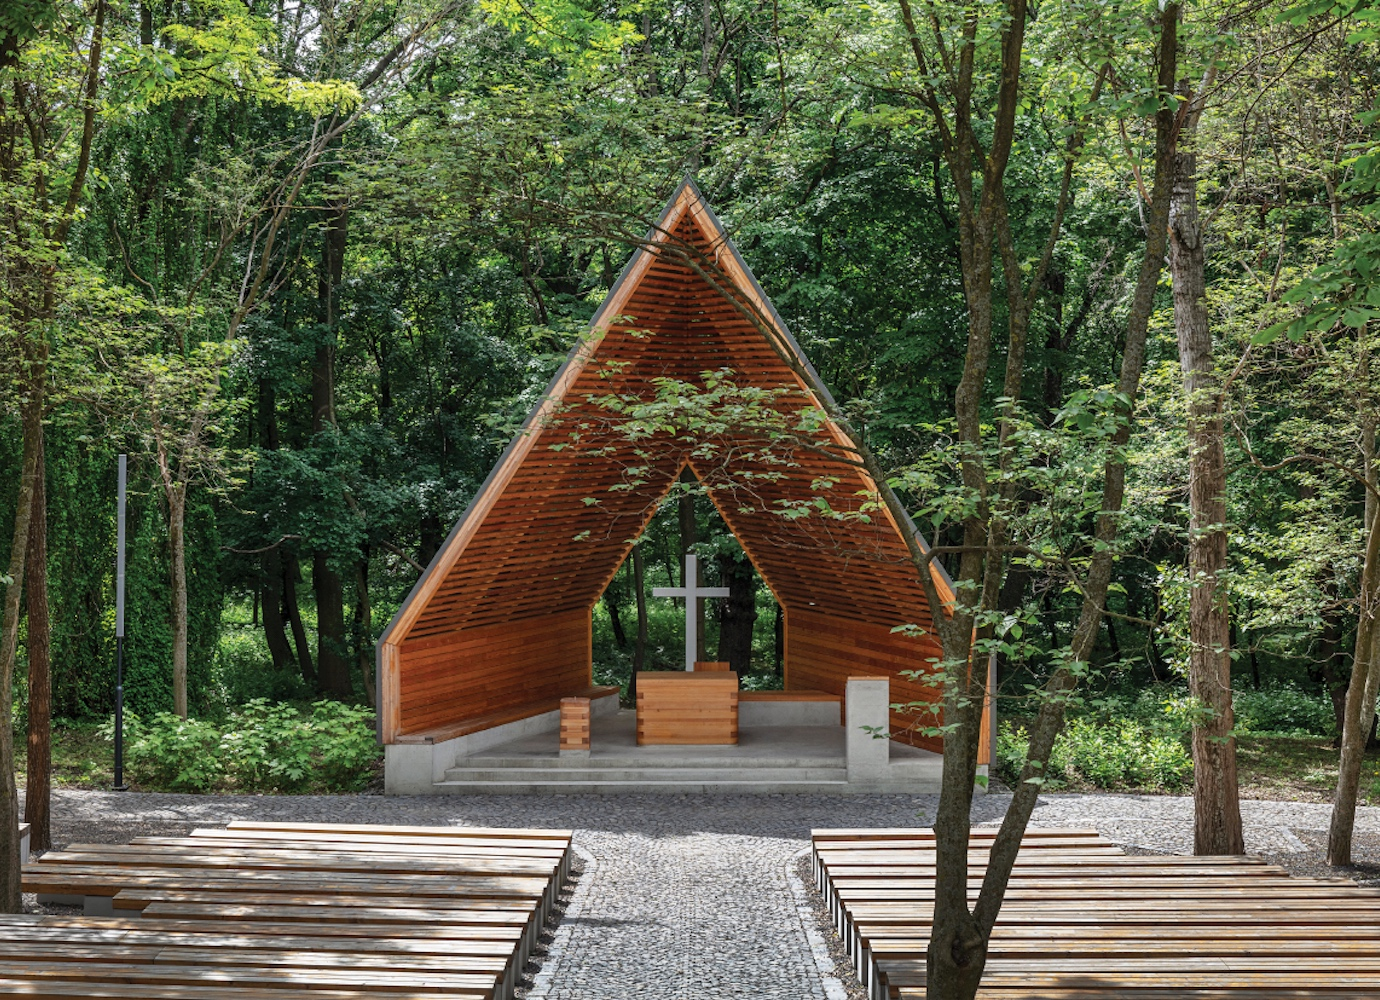 Hungarian architecture studio design modern open-air church made from a former Soviet monument plinth